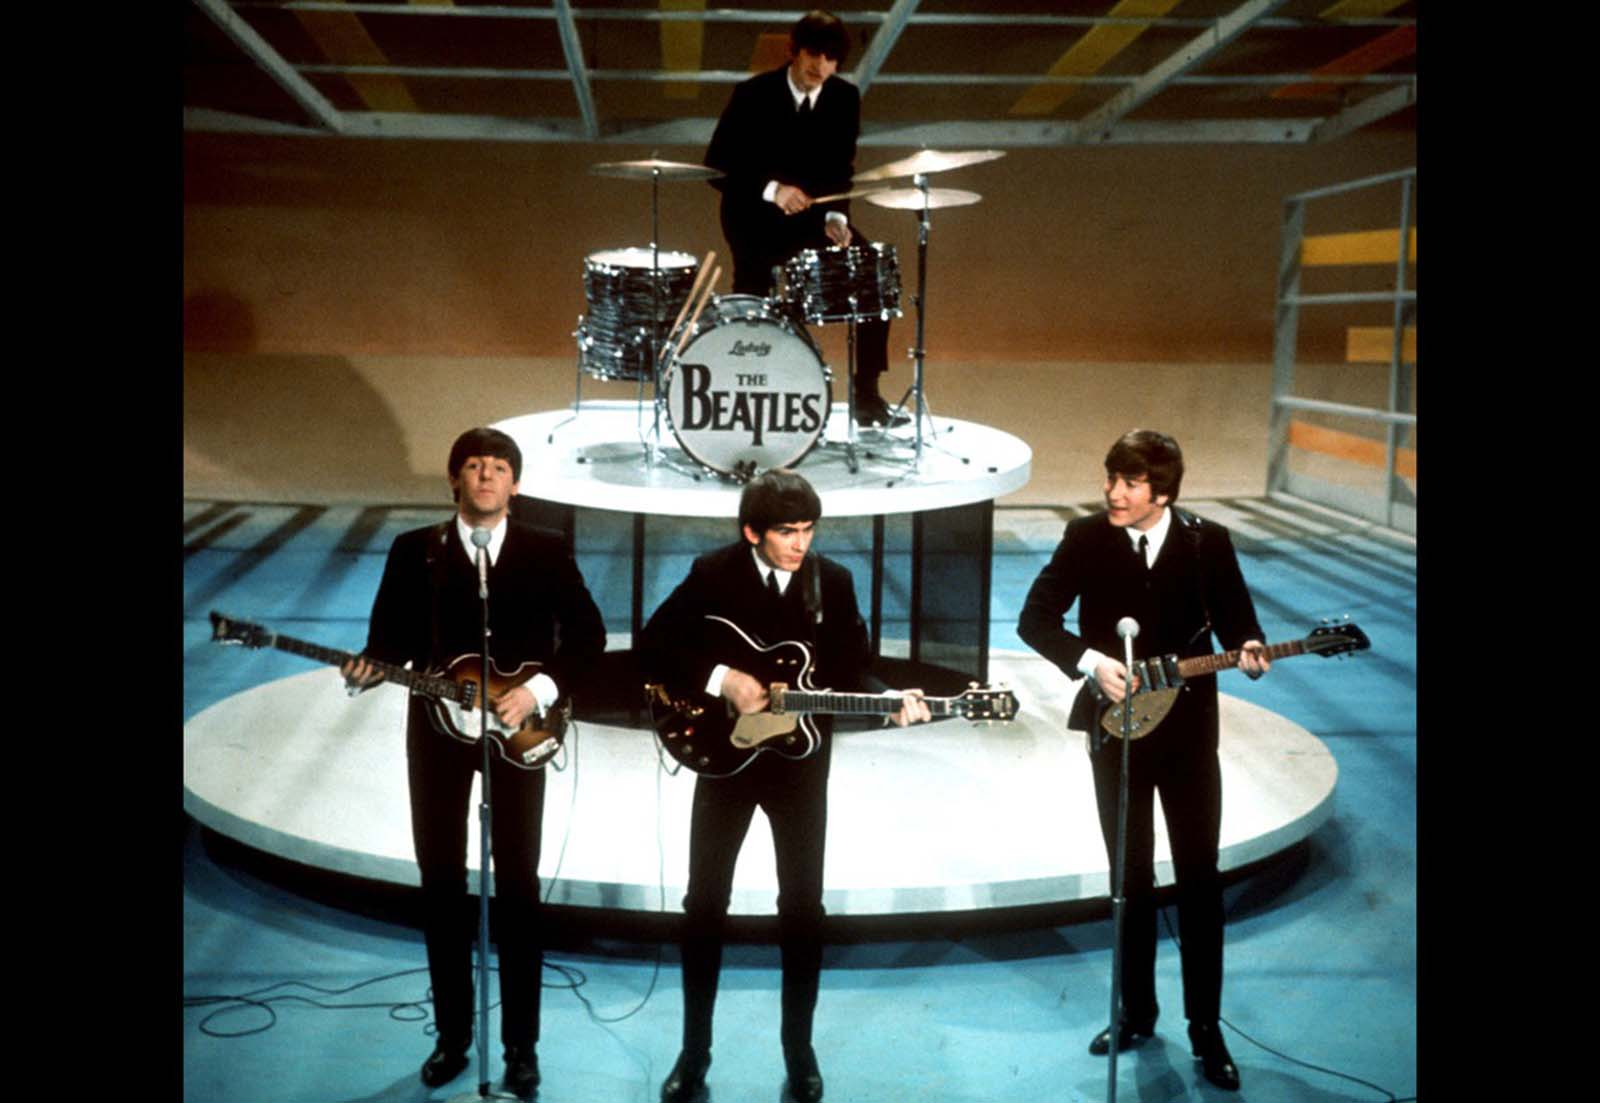 The Beatles perform on the Ed Sullivan Show in New York on February 9, 1964. An estimated 73 million viewers -- more than a third of the U.S. -- saw the performance, a record audience at the time.